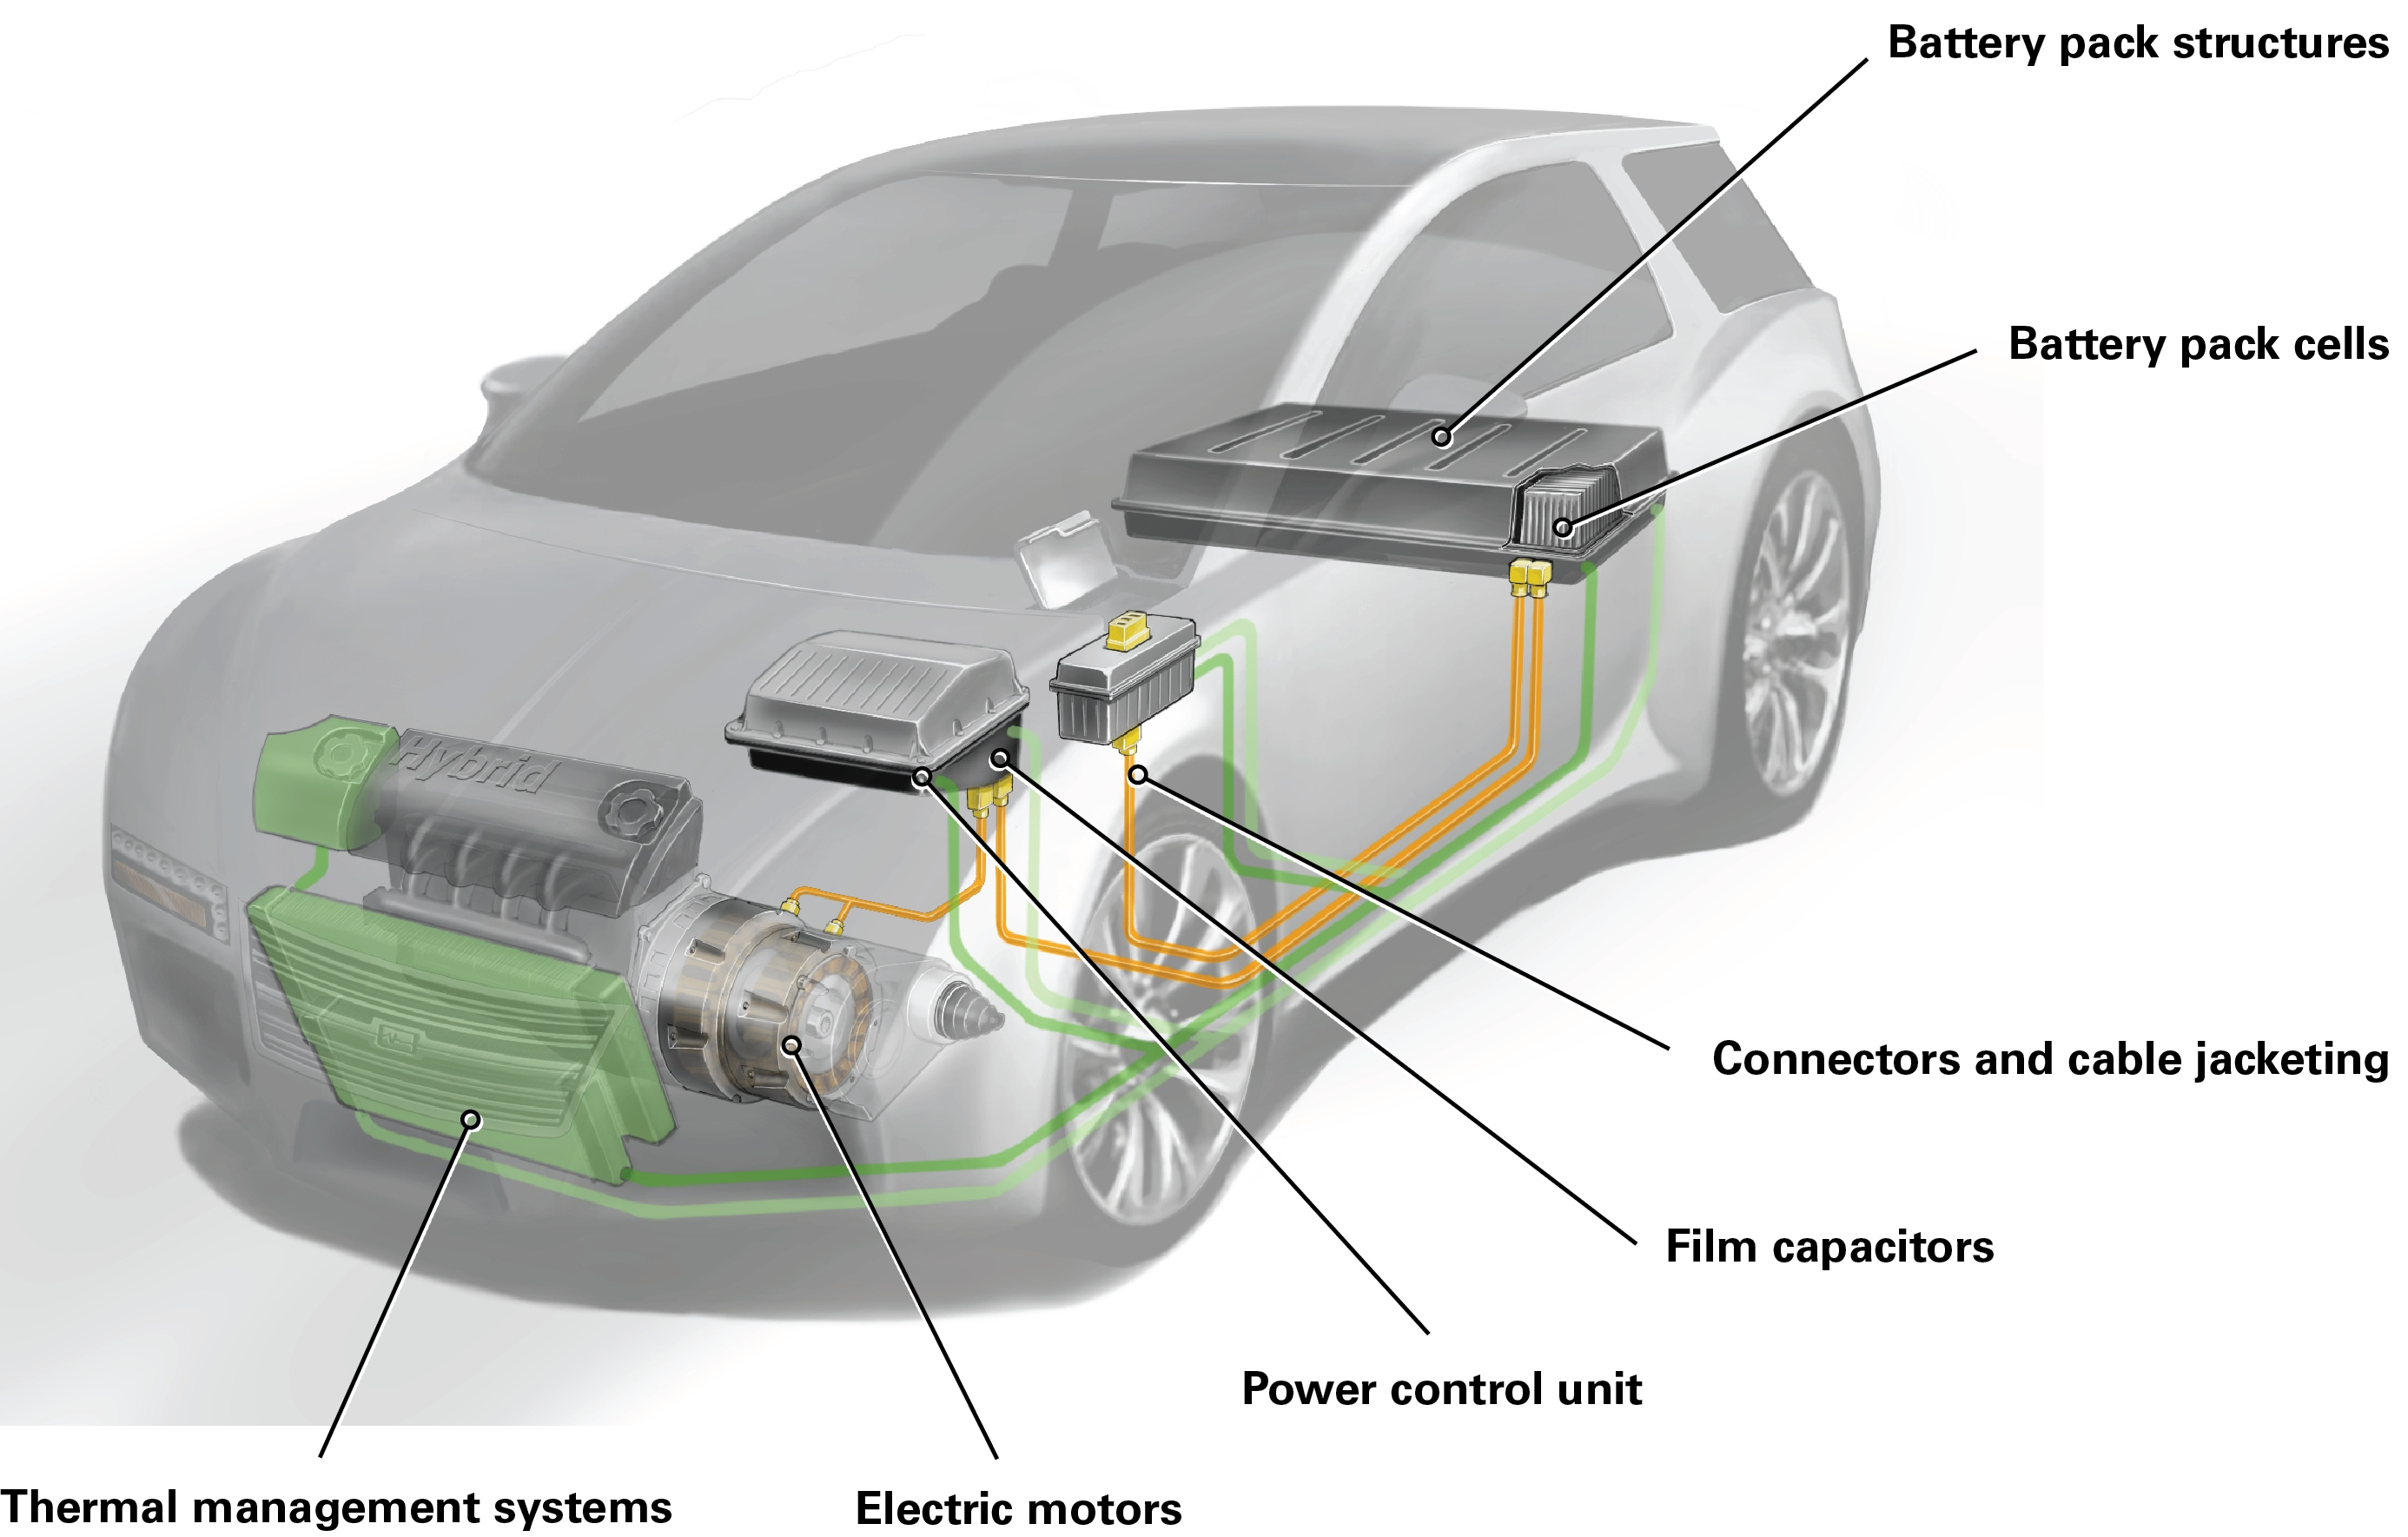 Special Considerations for Repairing Hybrid and Electric Vehicles ...